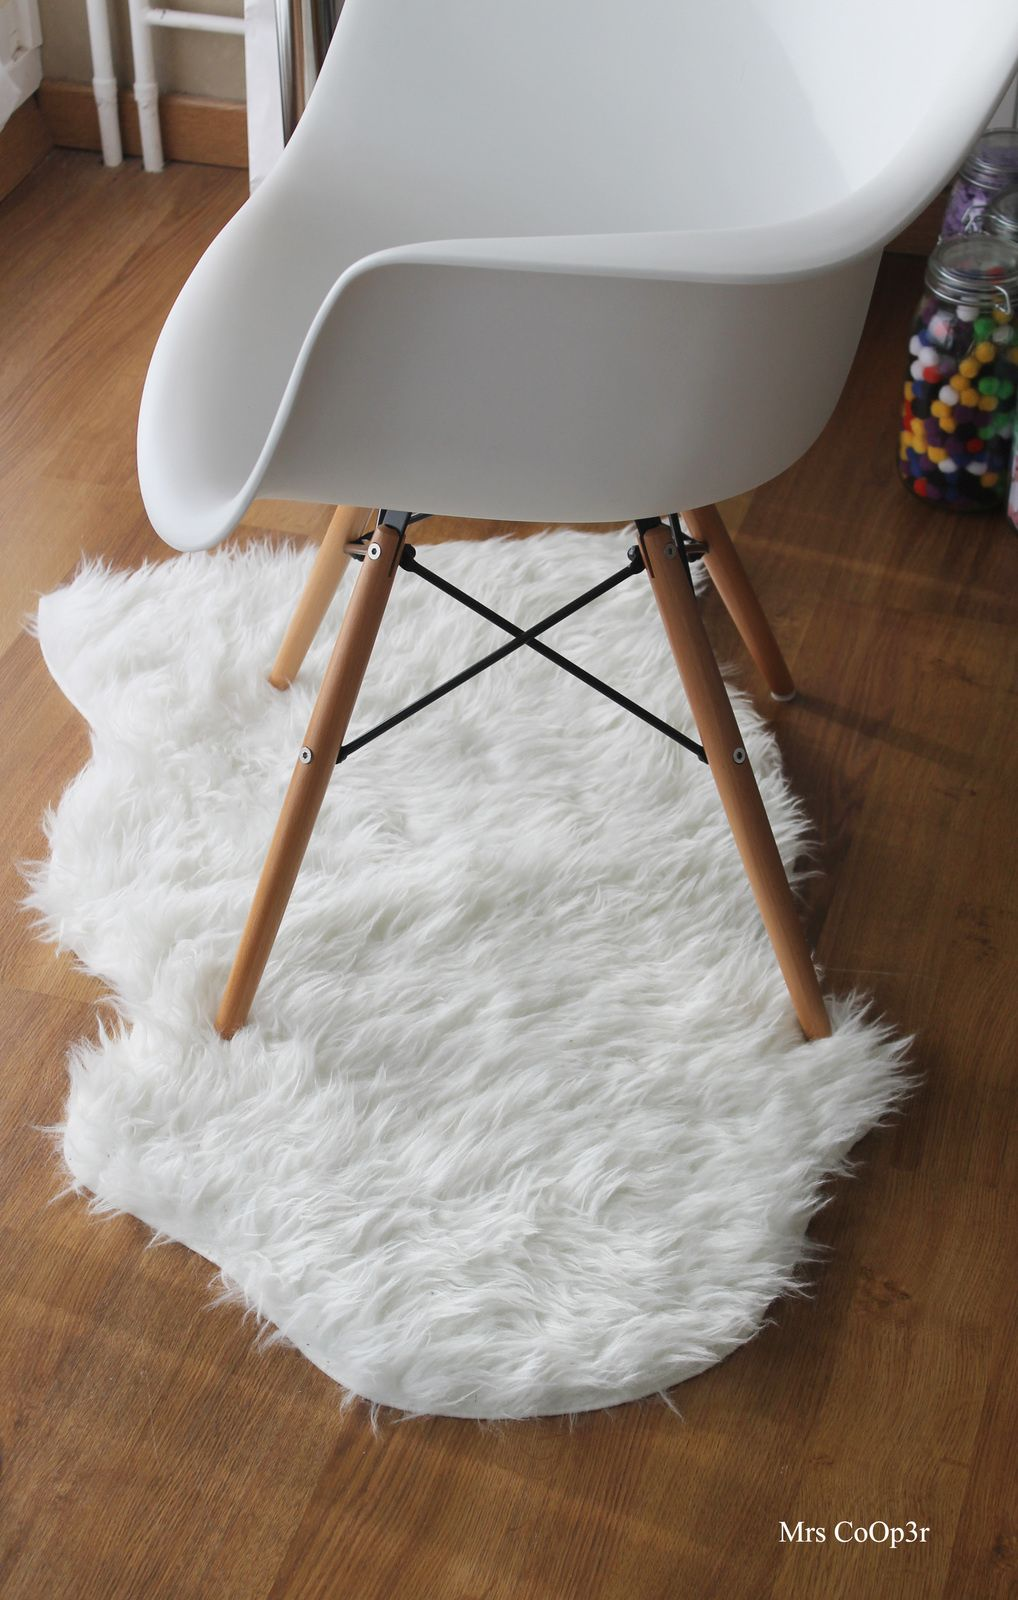 tapis imitation peau de mouton ikea mon chez moi. Black Bedroom Furniture Sets. Home Design Ideas